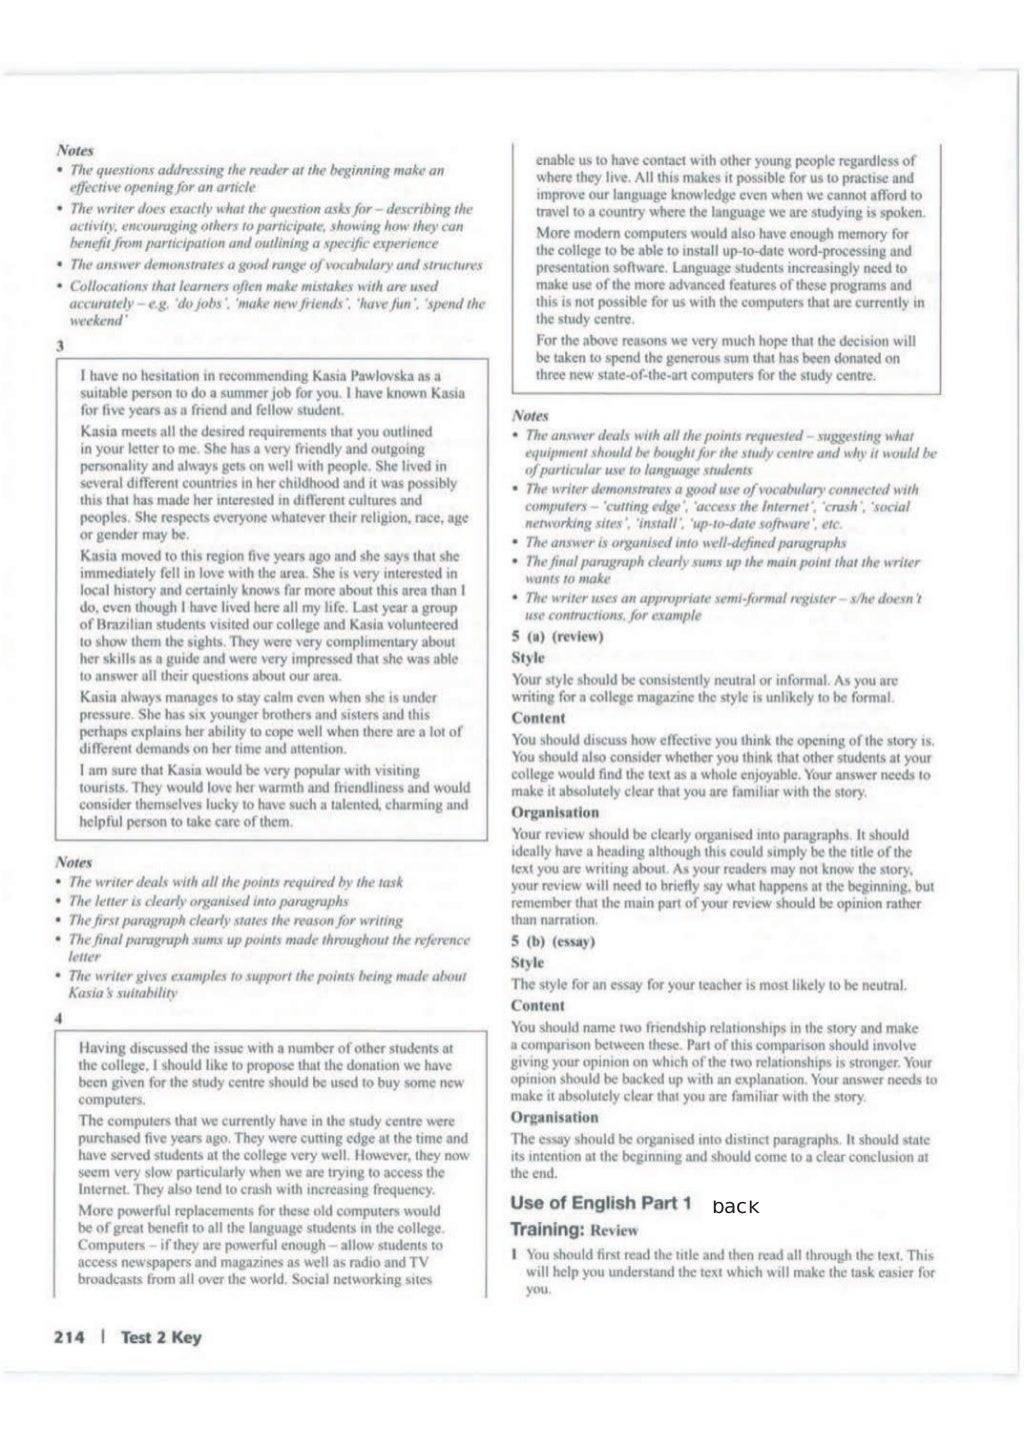 Advanced trainer 6 practice tests with answers book4joy (1) page 215